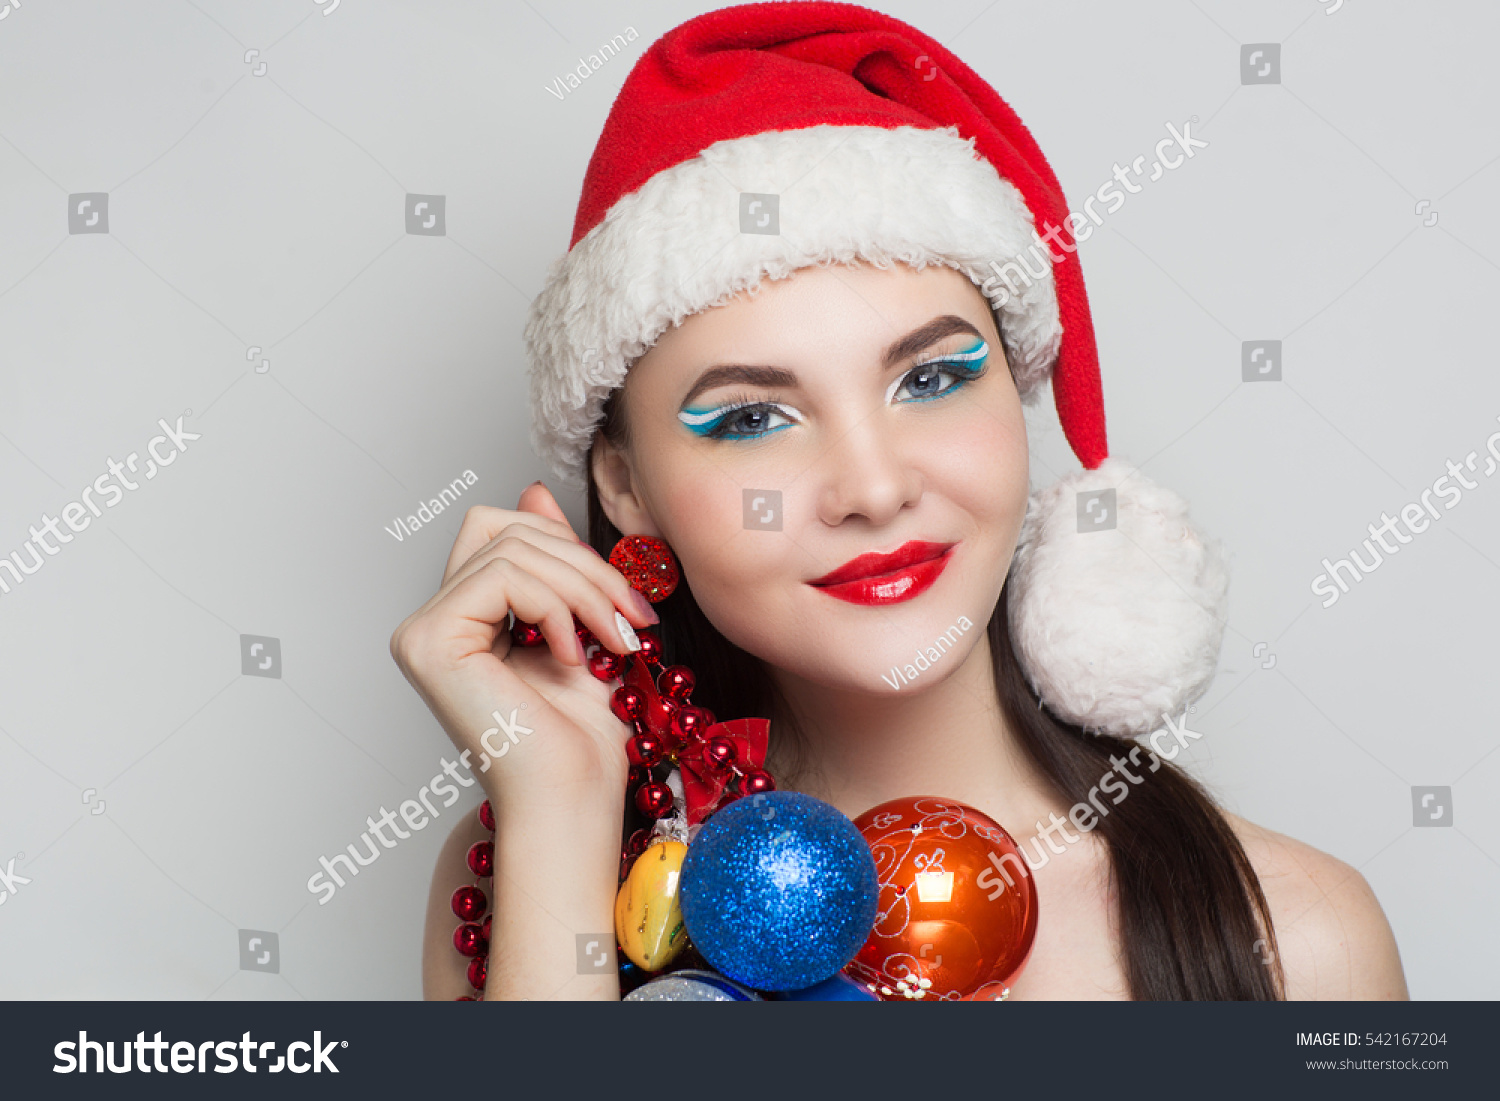 5a19739413620 Young face close up photo portrait. Beautiful girl wearing Christmas red hat  cap. Pretty woman smile happy emotions